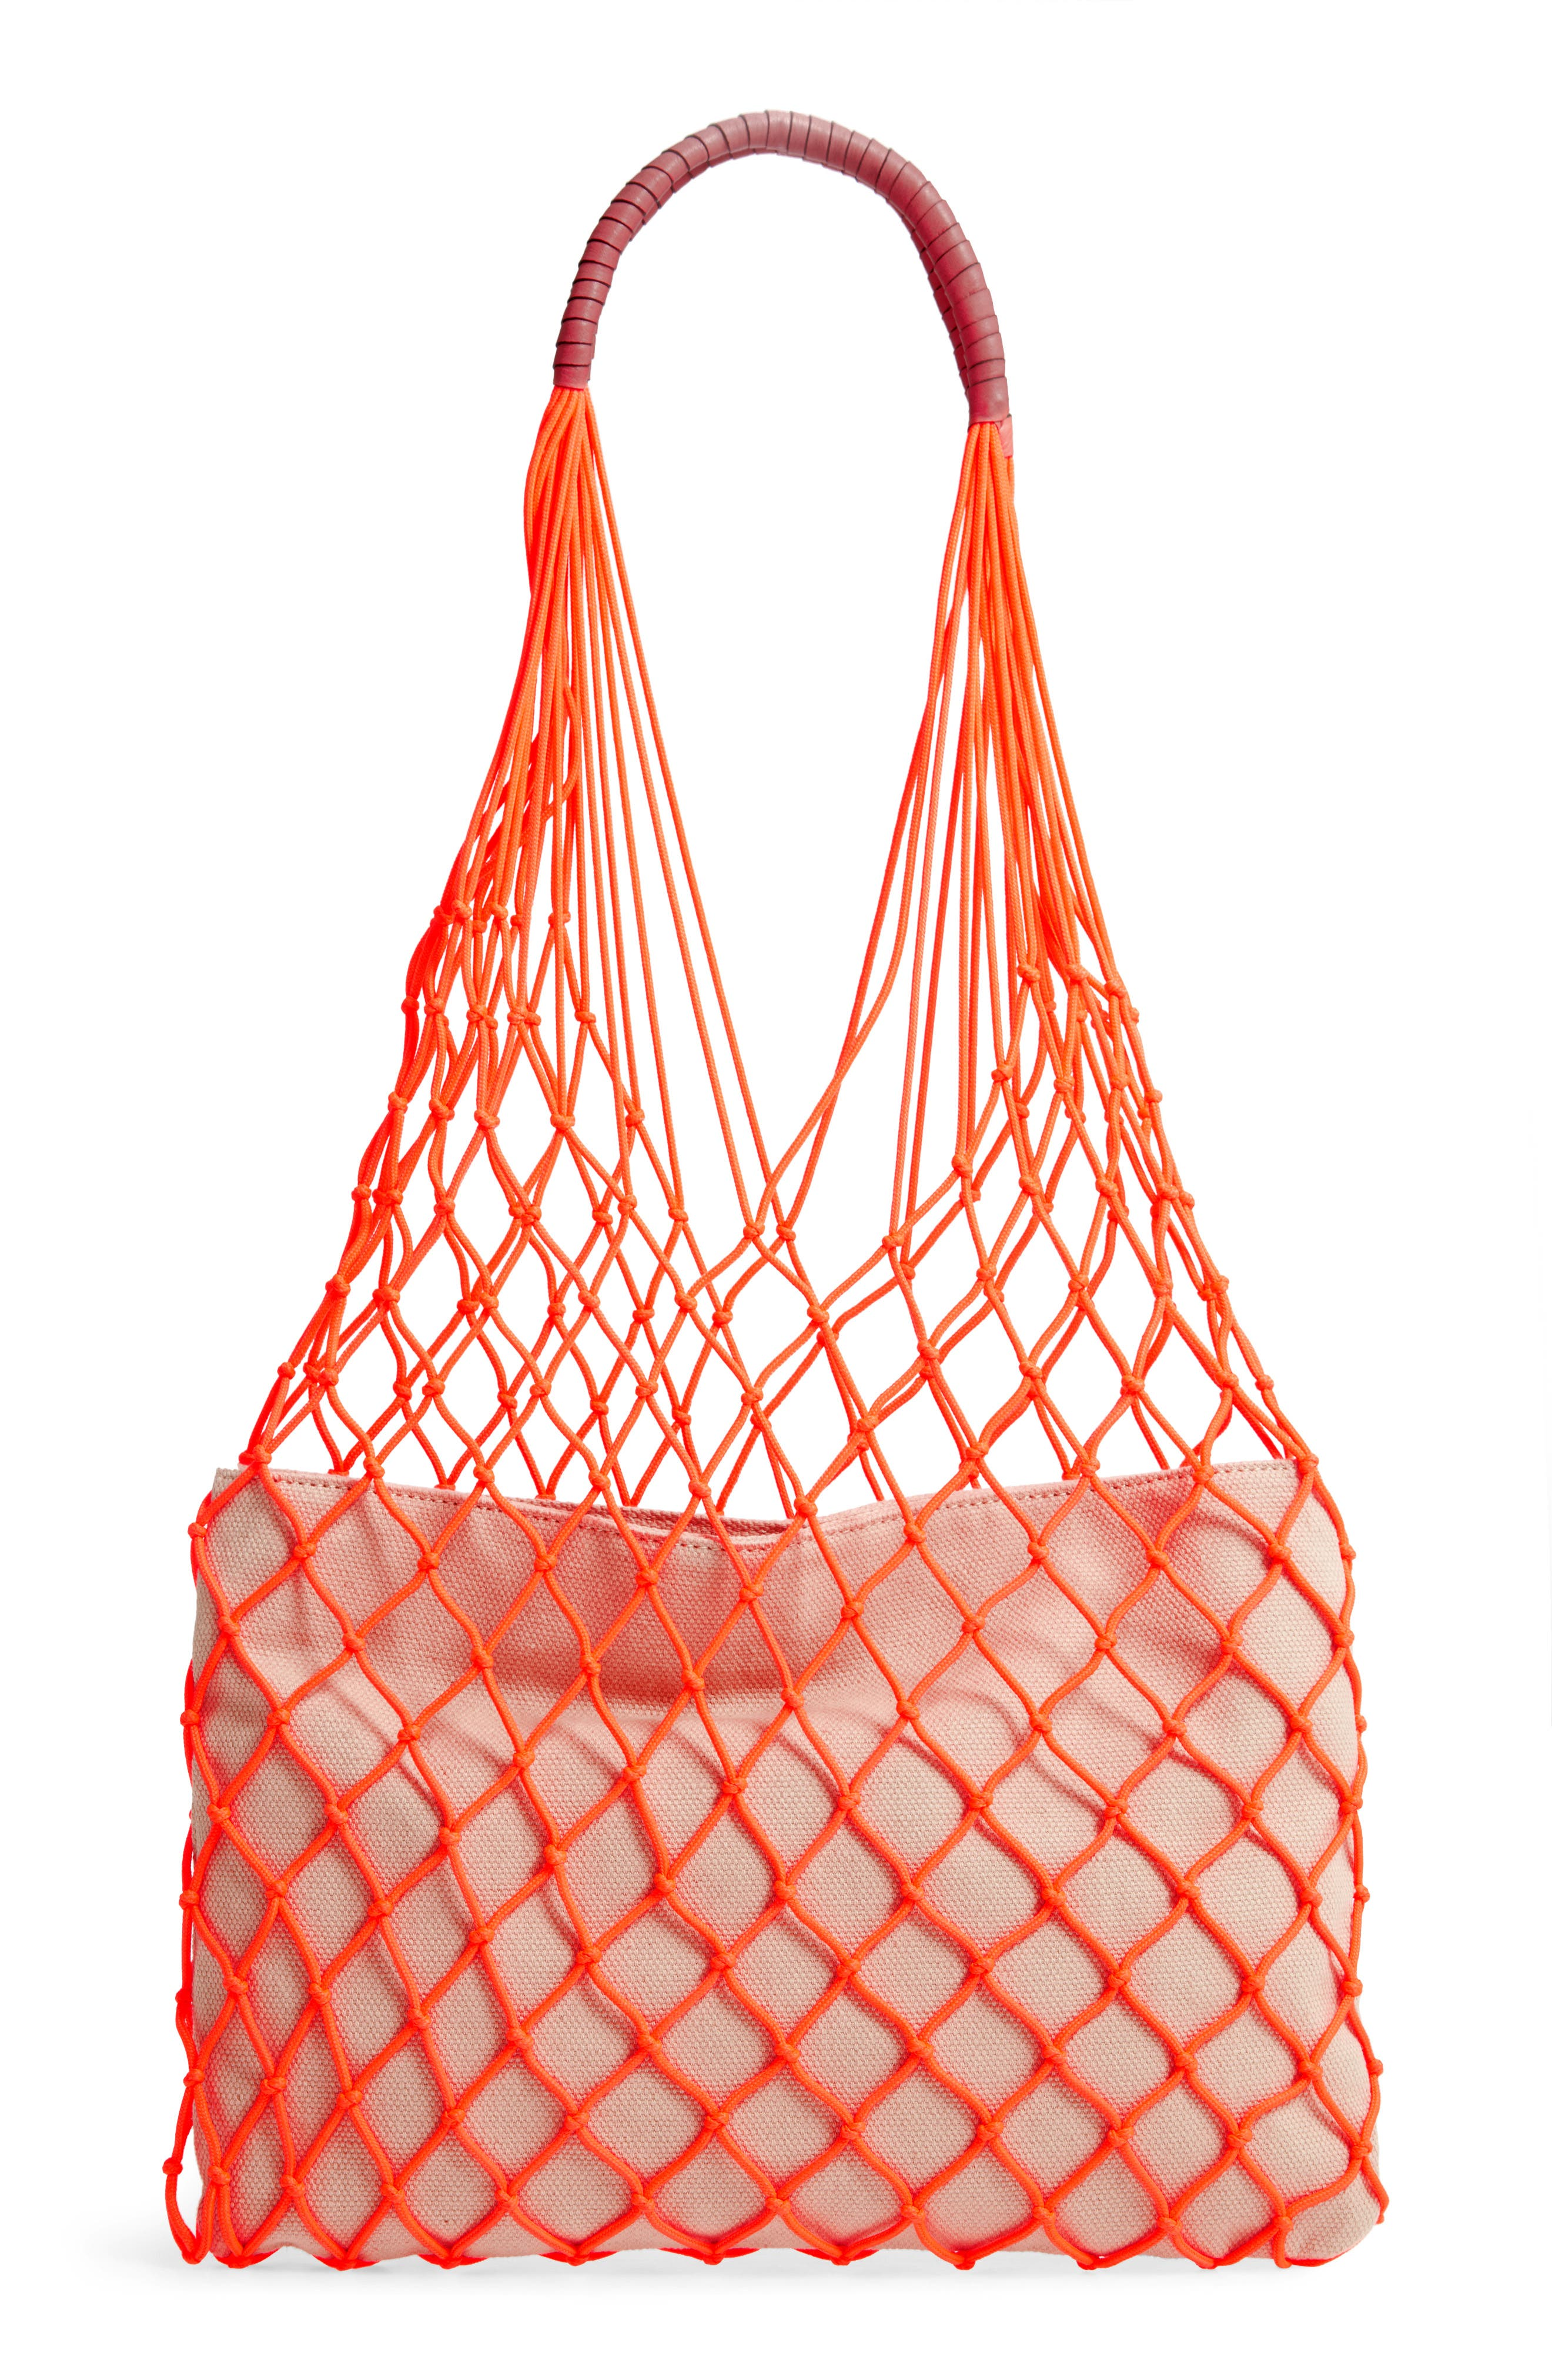 VINCE CAMUTO Zest Tote, Main, color, FIERY CORAL